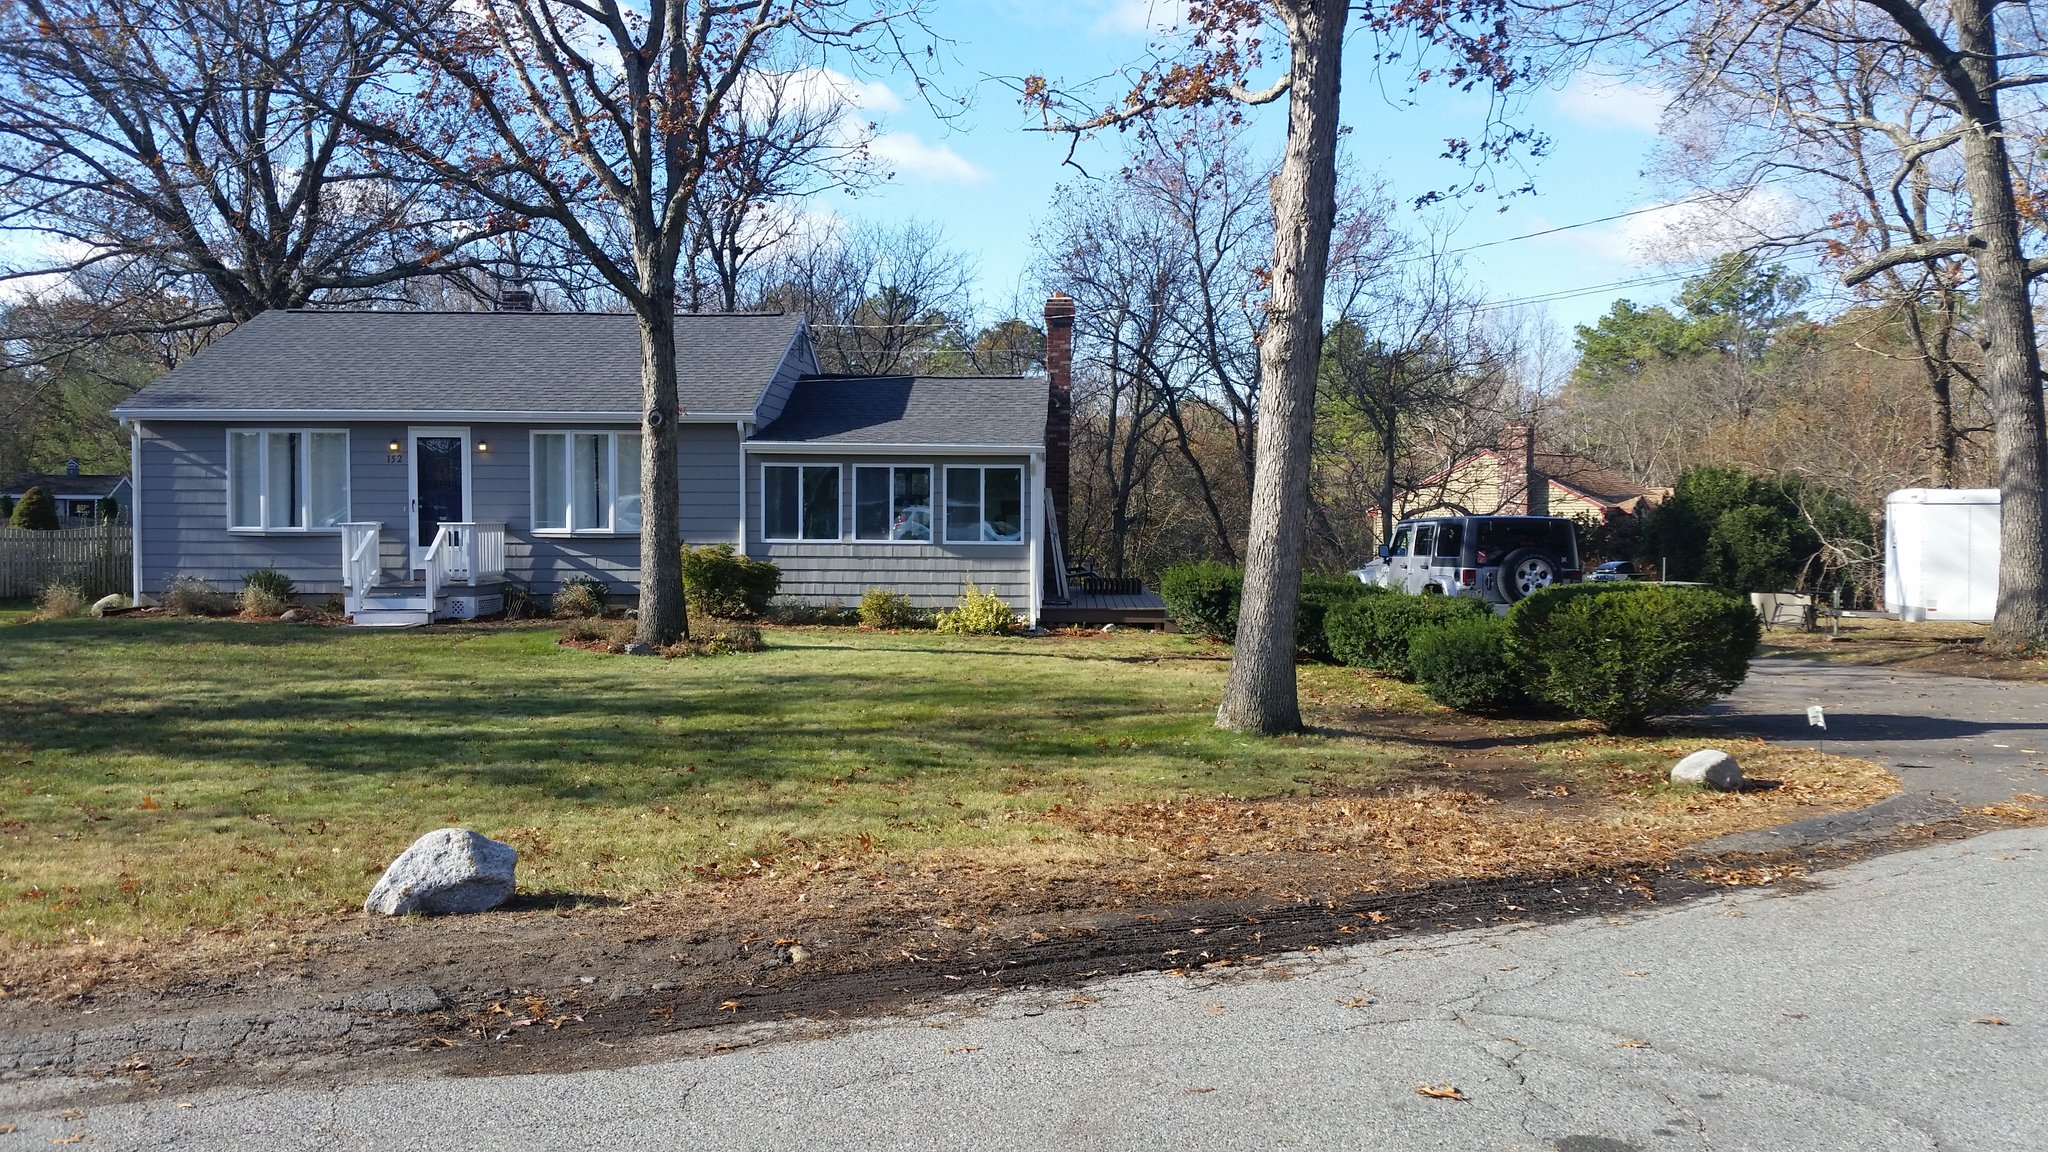 The home in Blackstone, Mass. where an explosive device damaged a car Thursday night.<p></p>